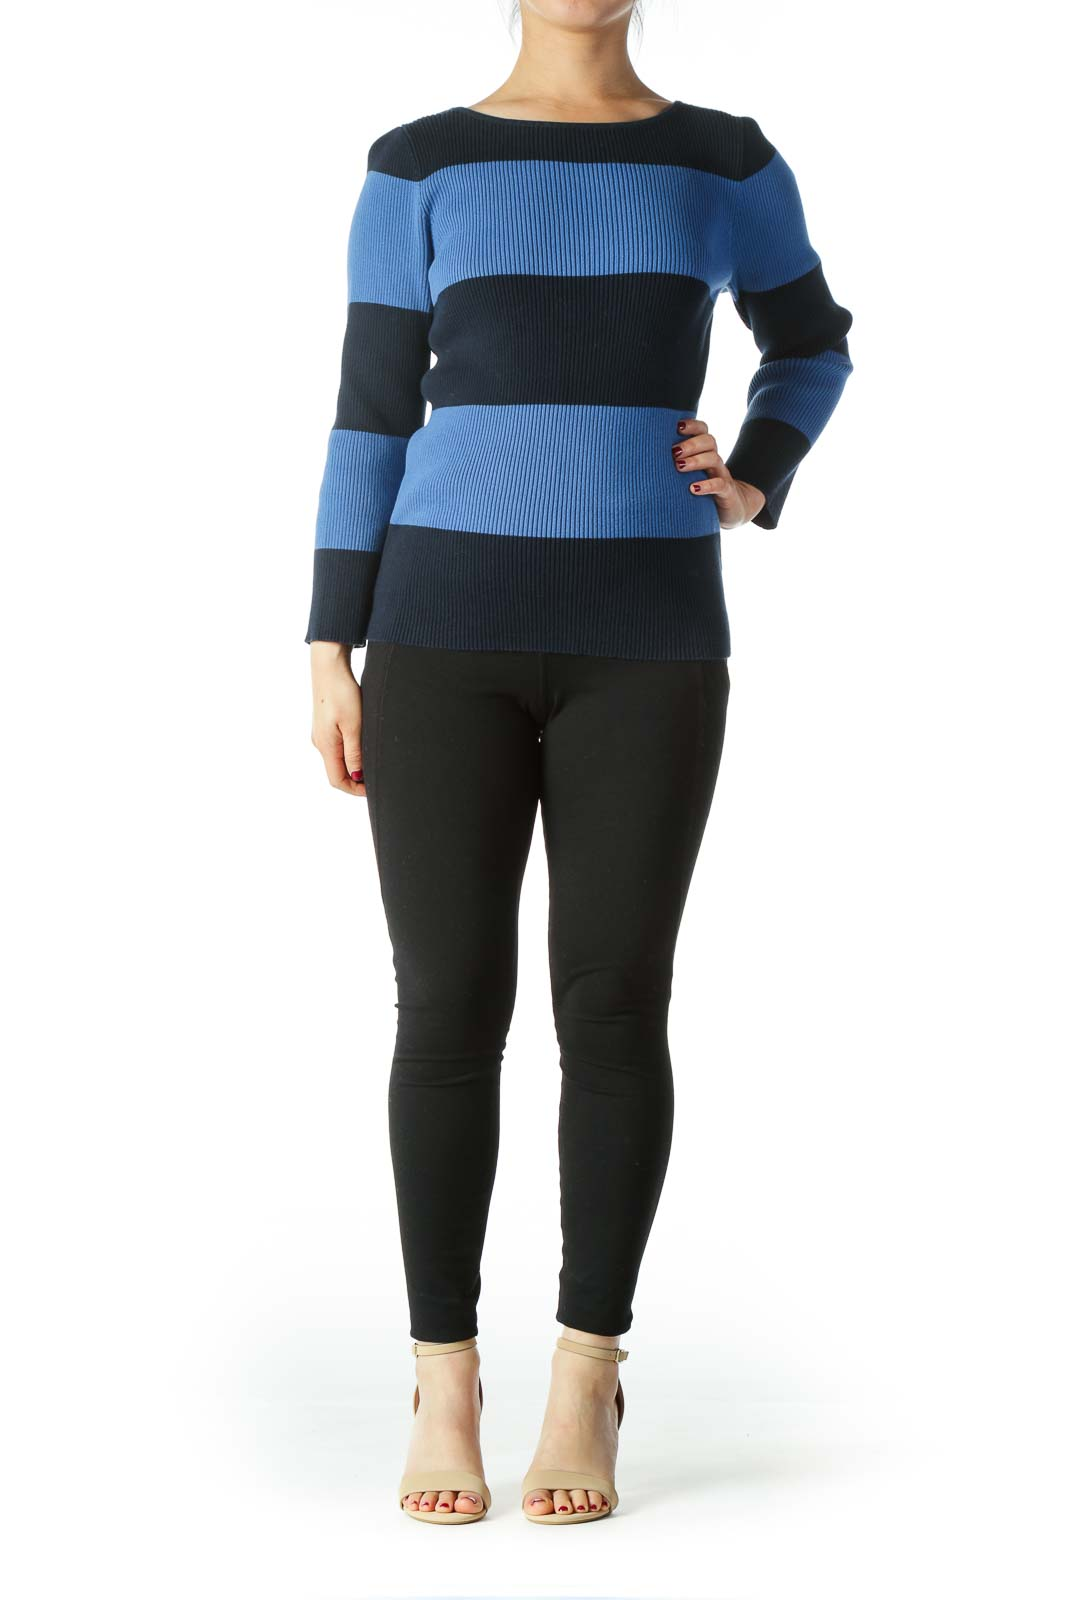 Blue and Navy Striped Sweater